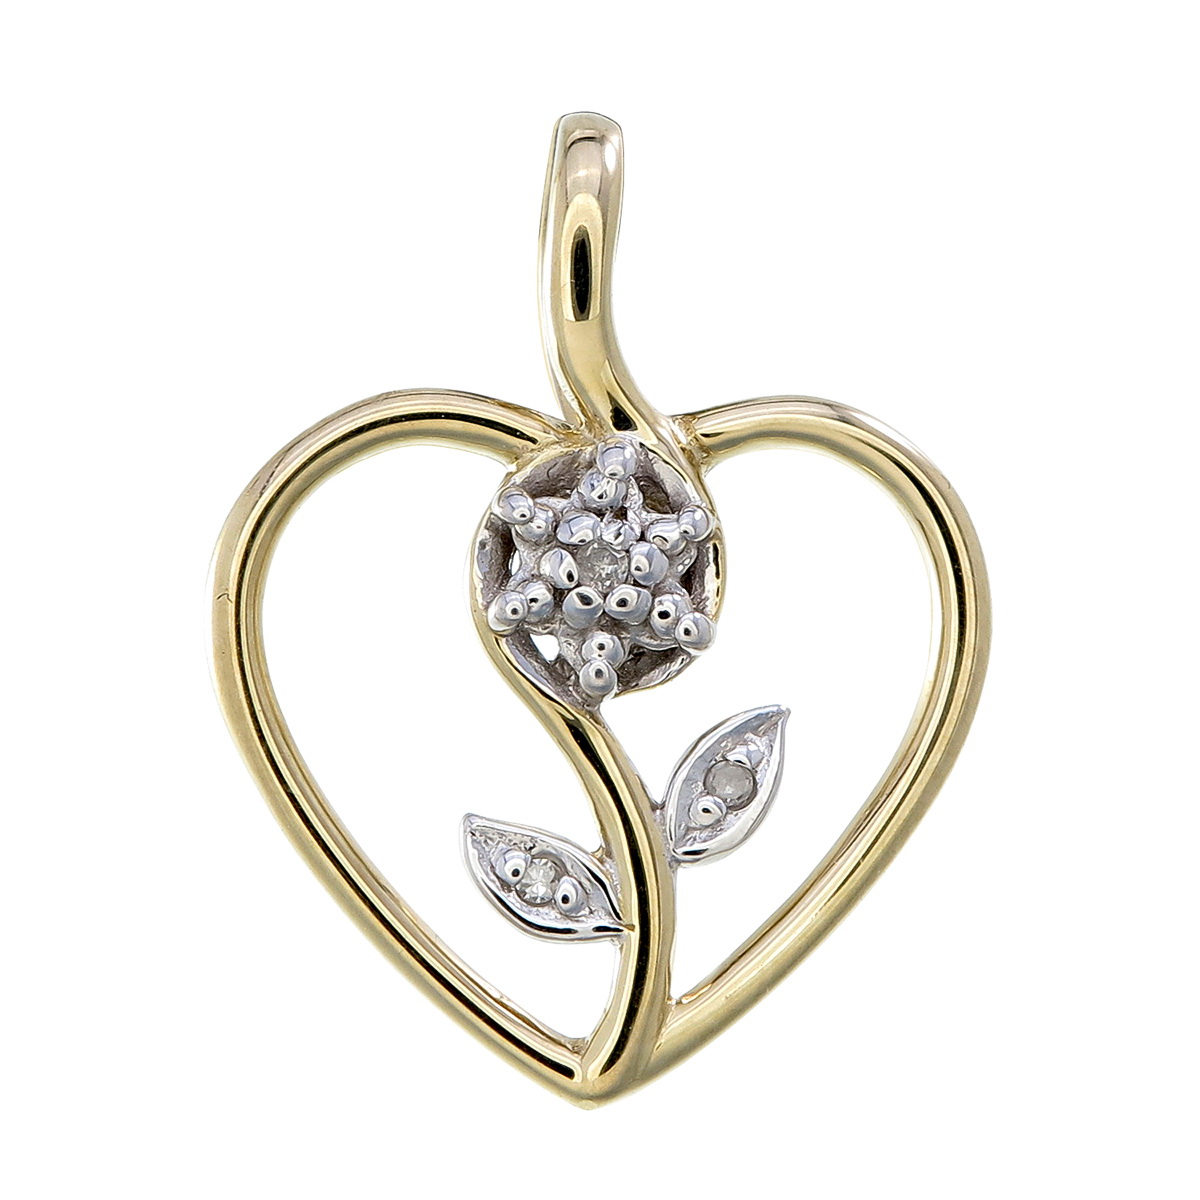 Flower in heart pendant in 10K yellow gold set with a touch of diamond